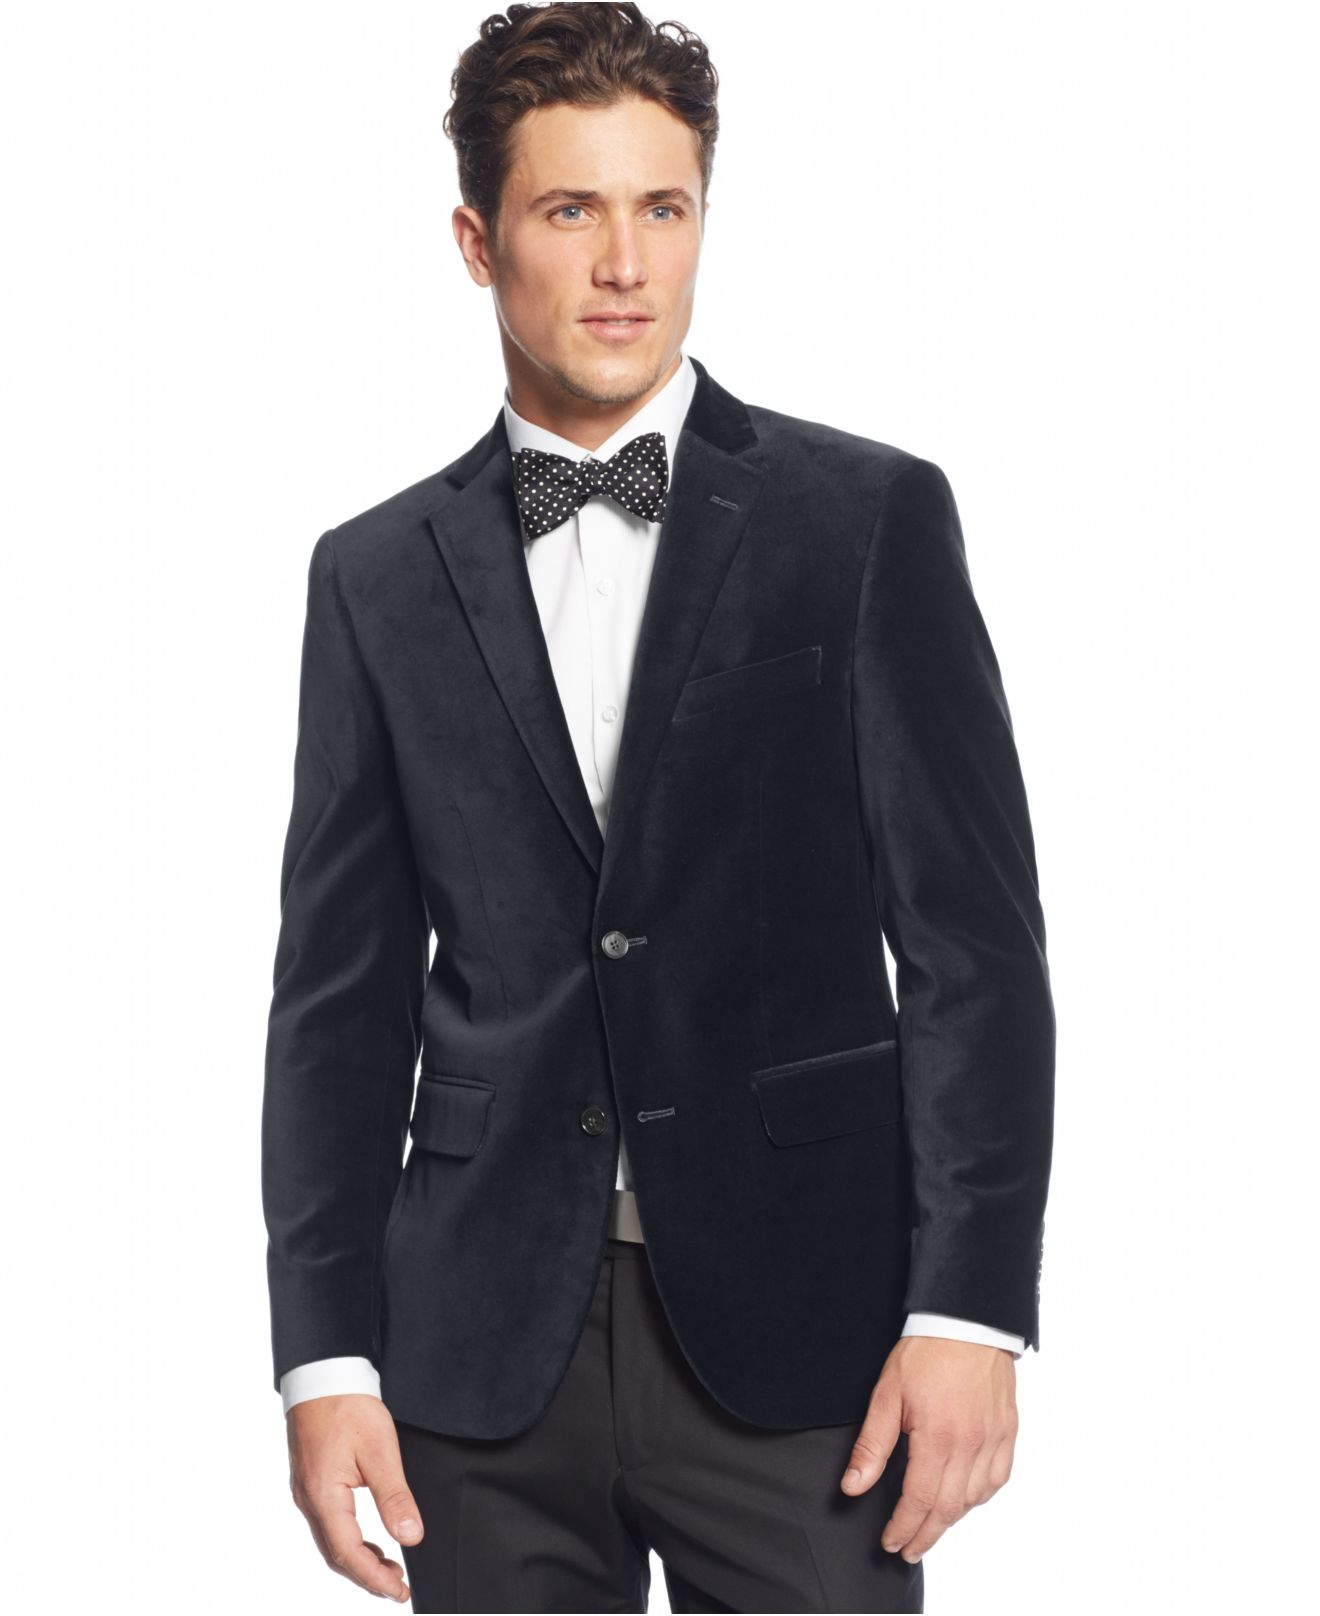 Shop the regular fit, slim fit or extra slim fit men's sport coats to create a flawless professional or casual look. Free shipping available on all orders. JavaScript is disabled.